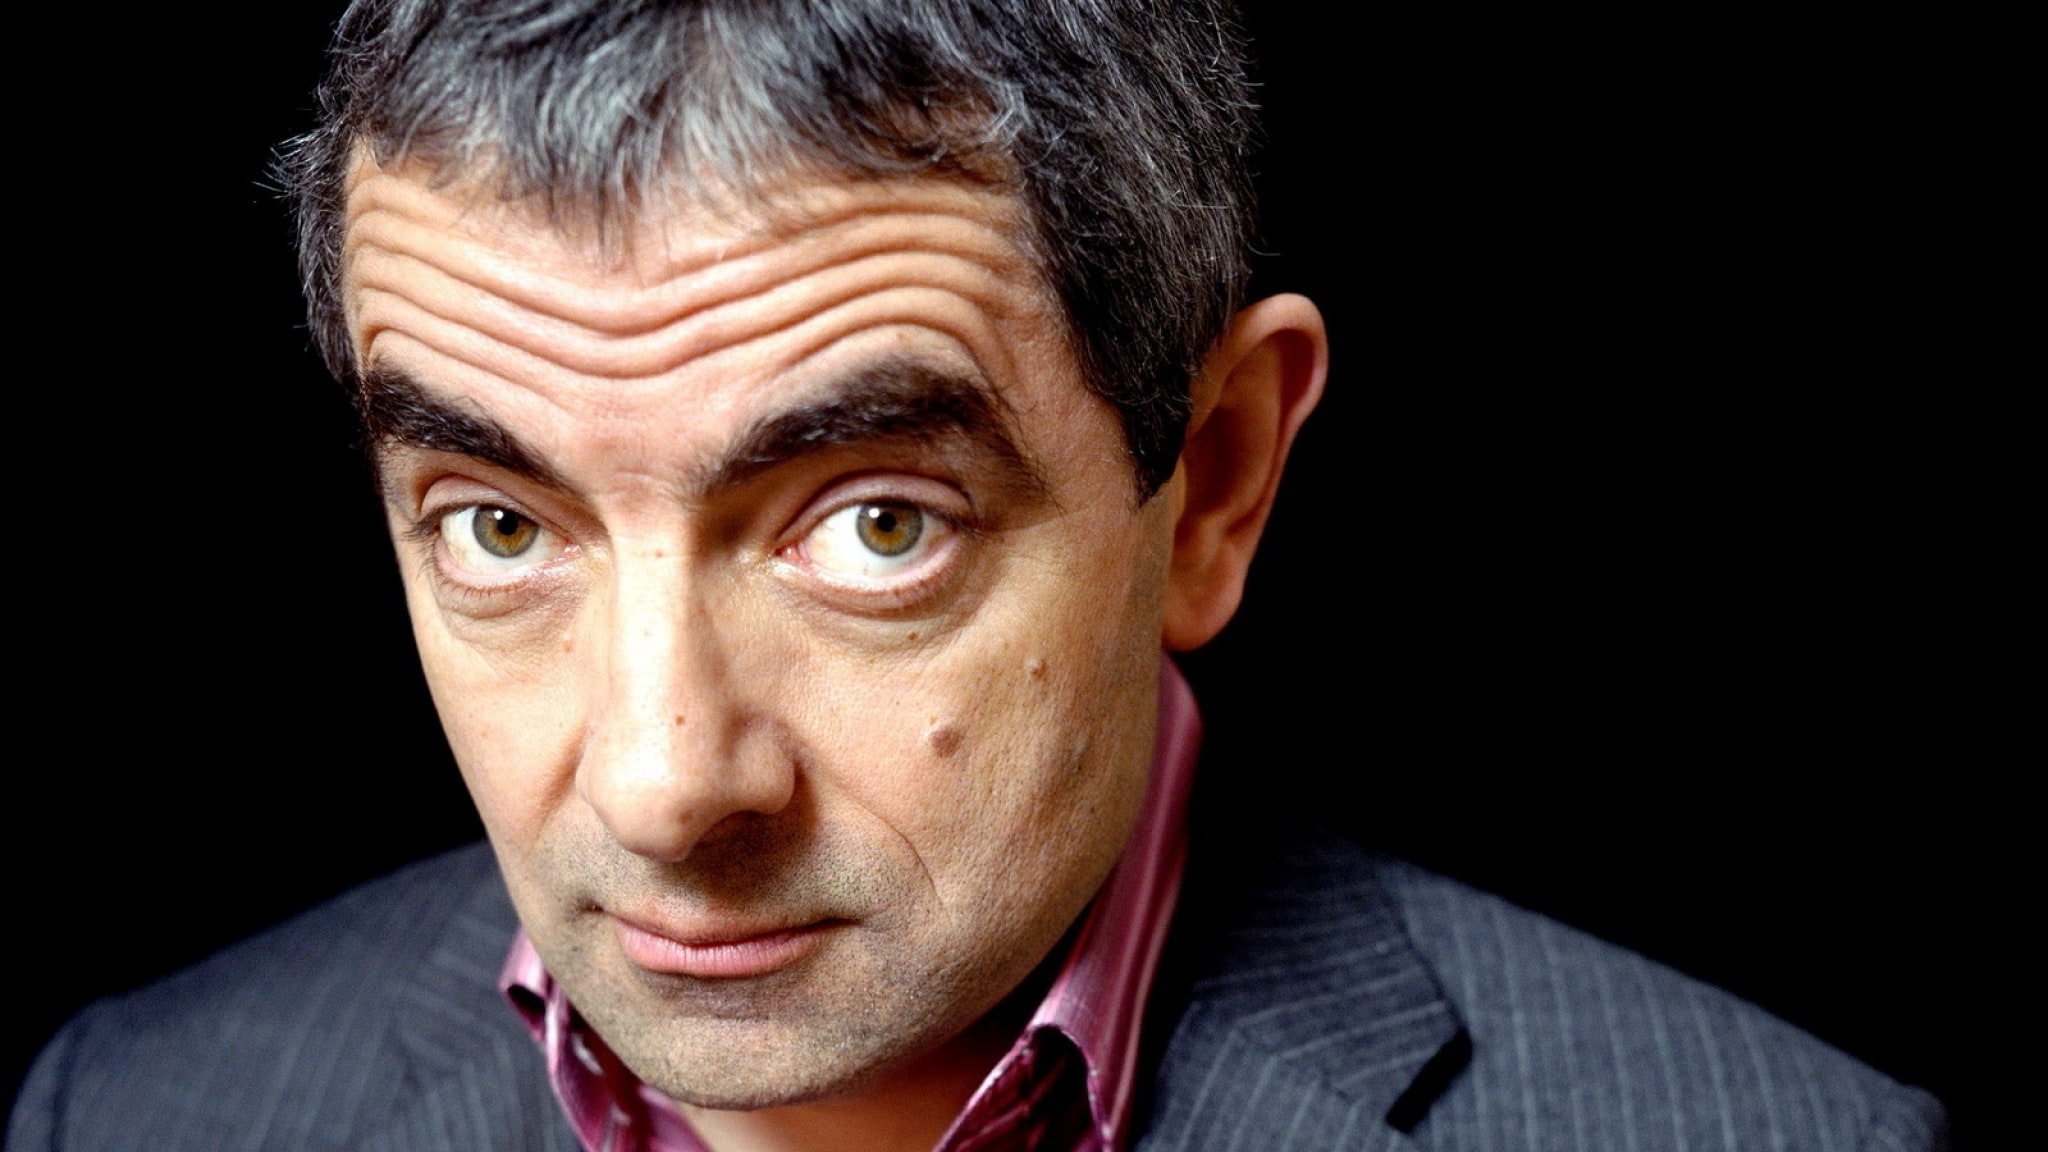 Rowan Atkinson Full hd wallpapers